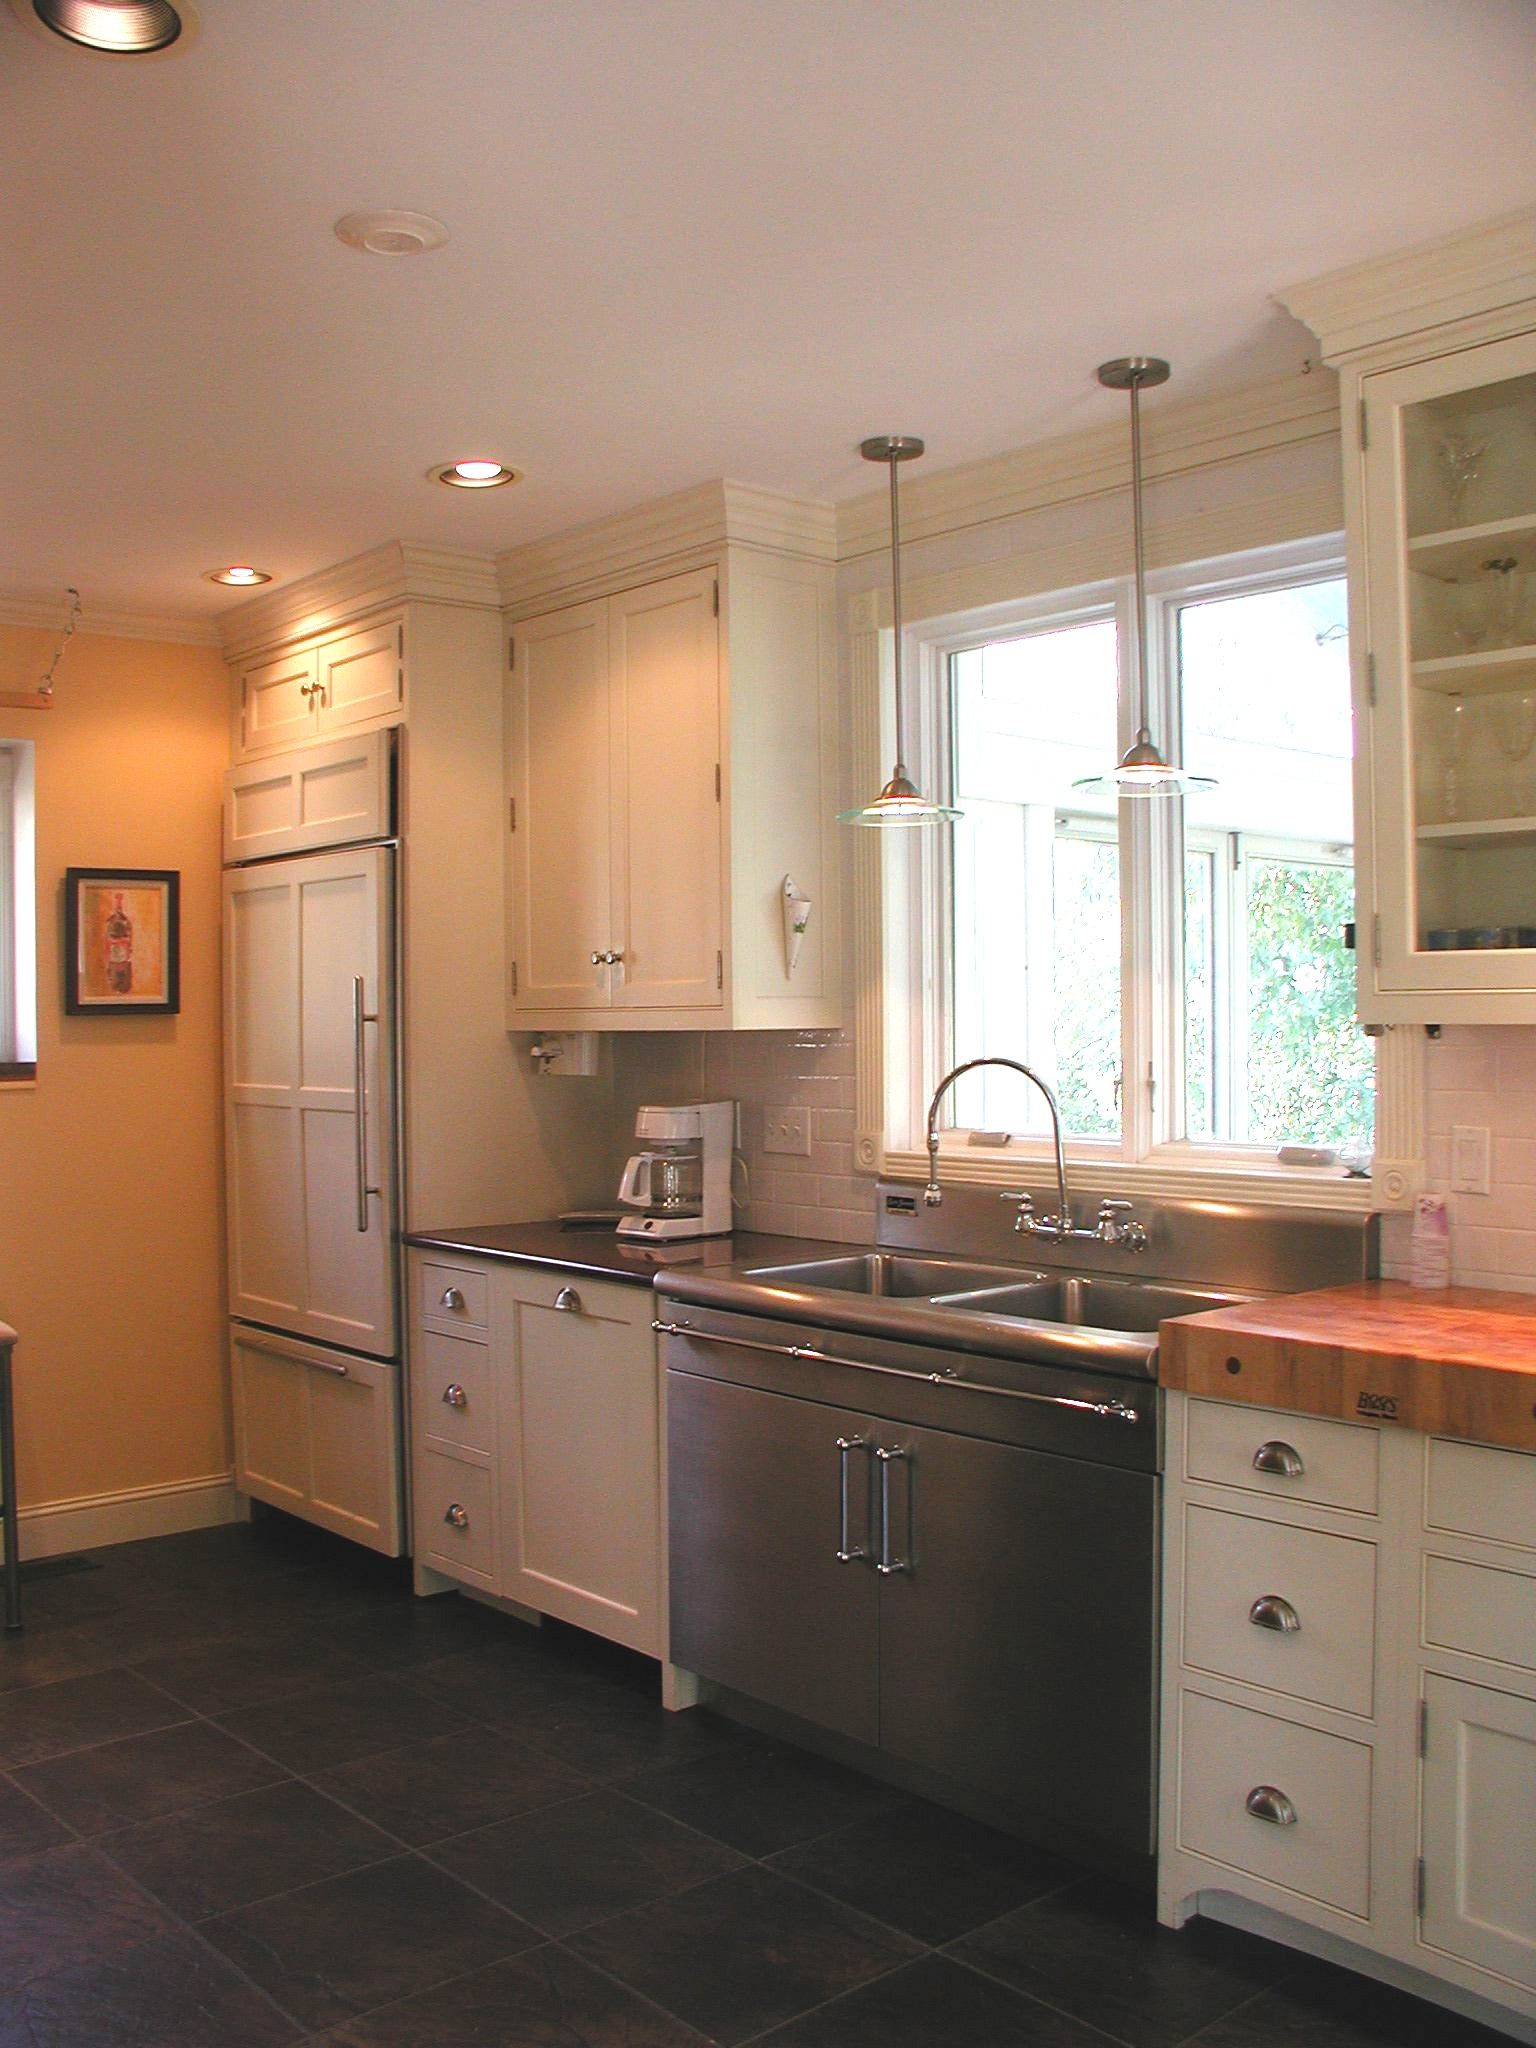 Pendant light over kitchen sink distance from wall vintage kitchen